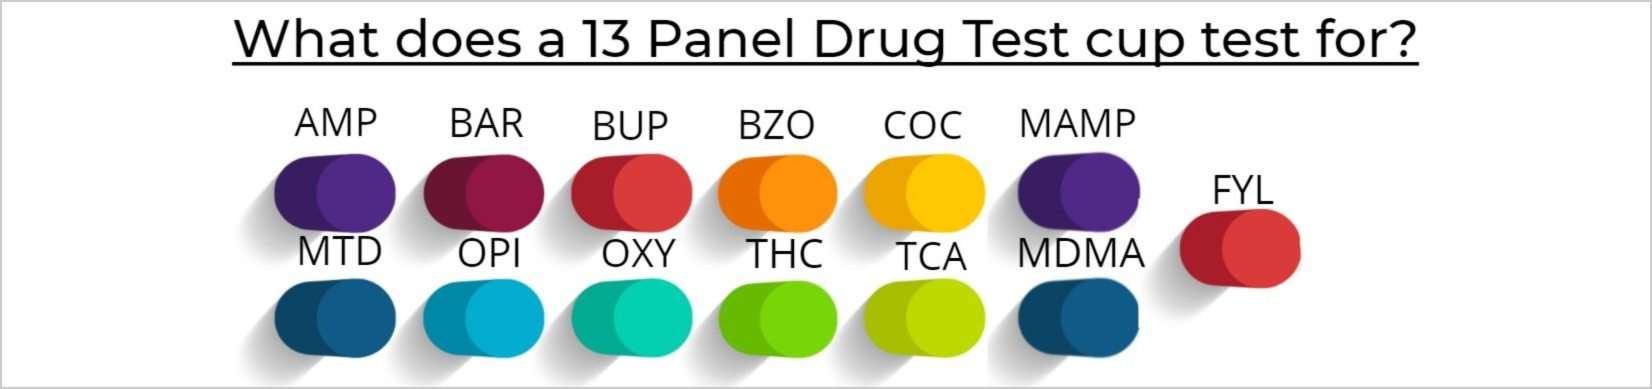 What does a 13 Panel Drug Test cup test for